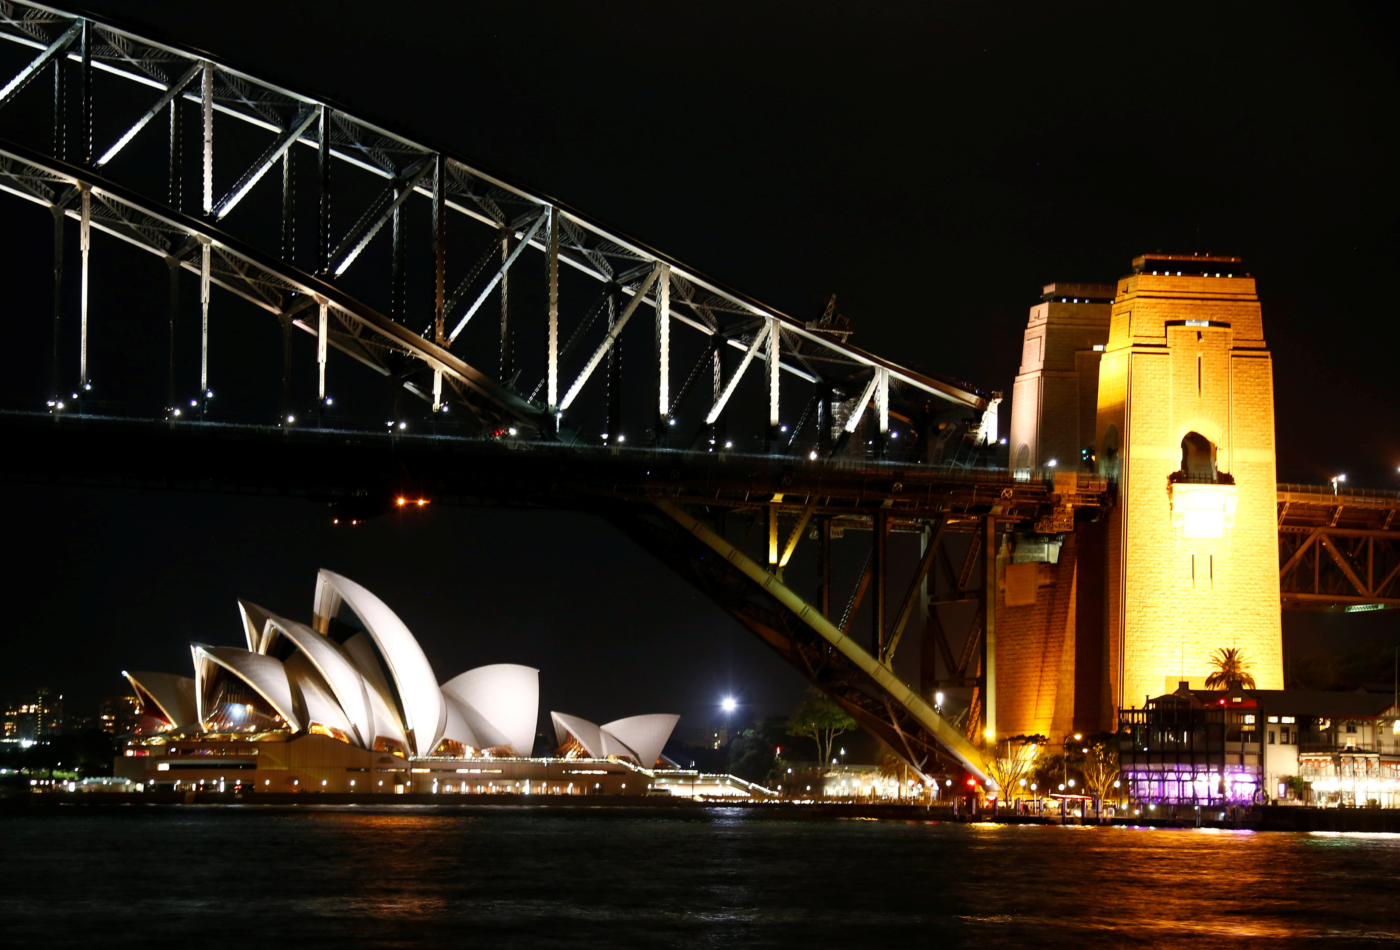 The Sydney Harbour Bridge and Opera House seen before the tenth anniversary of Earth Hour in Sydney, Australia, March 25, 2017.      REUTERS/David Gray